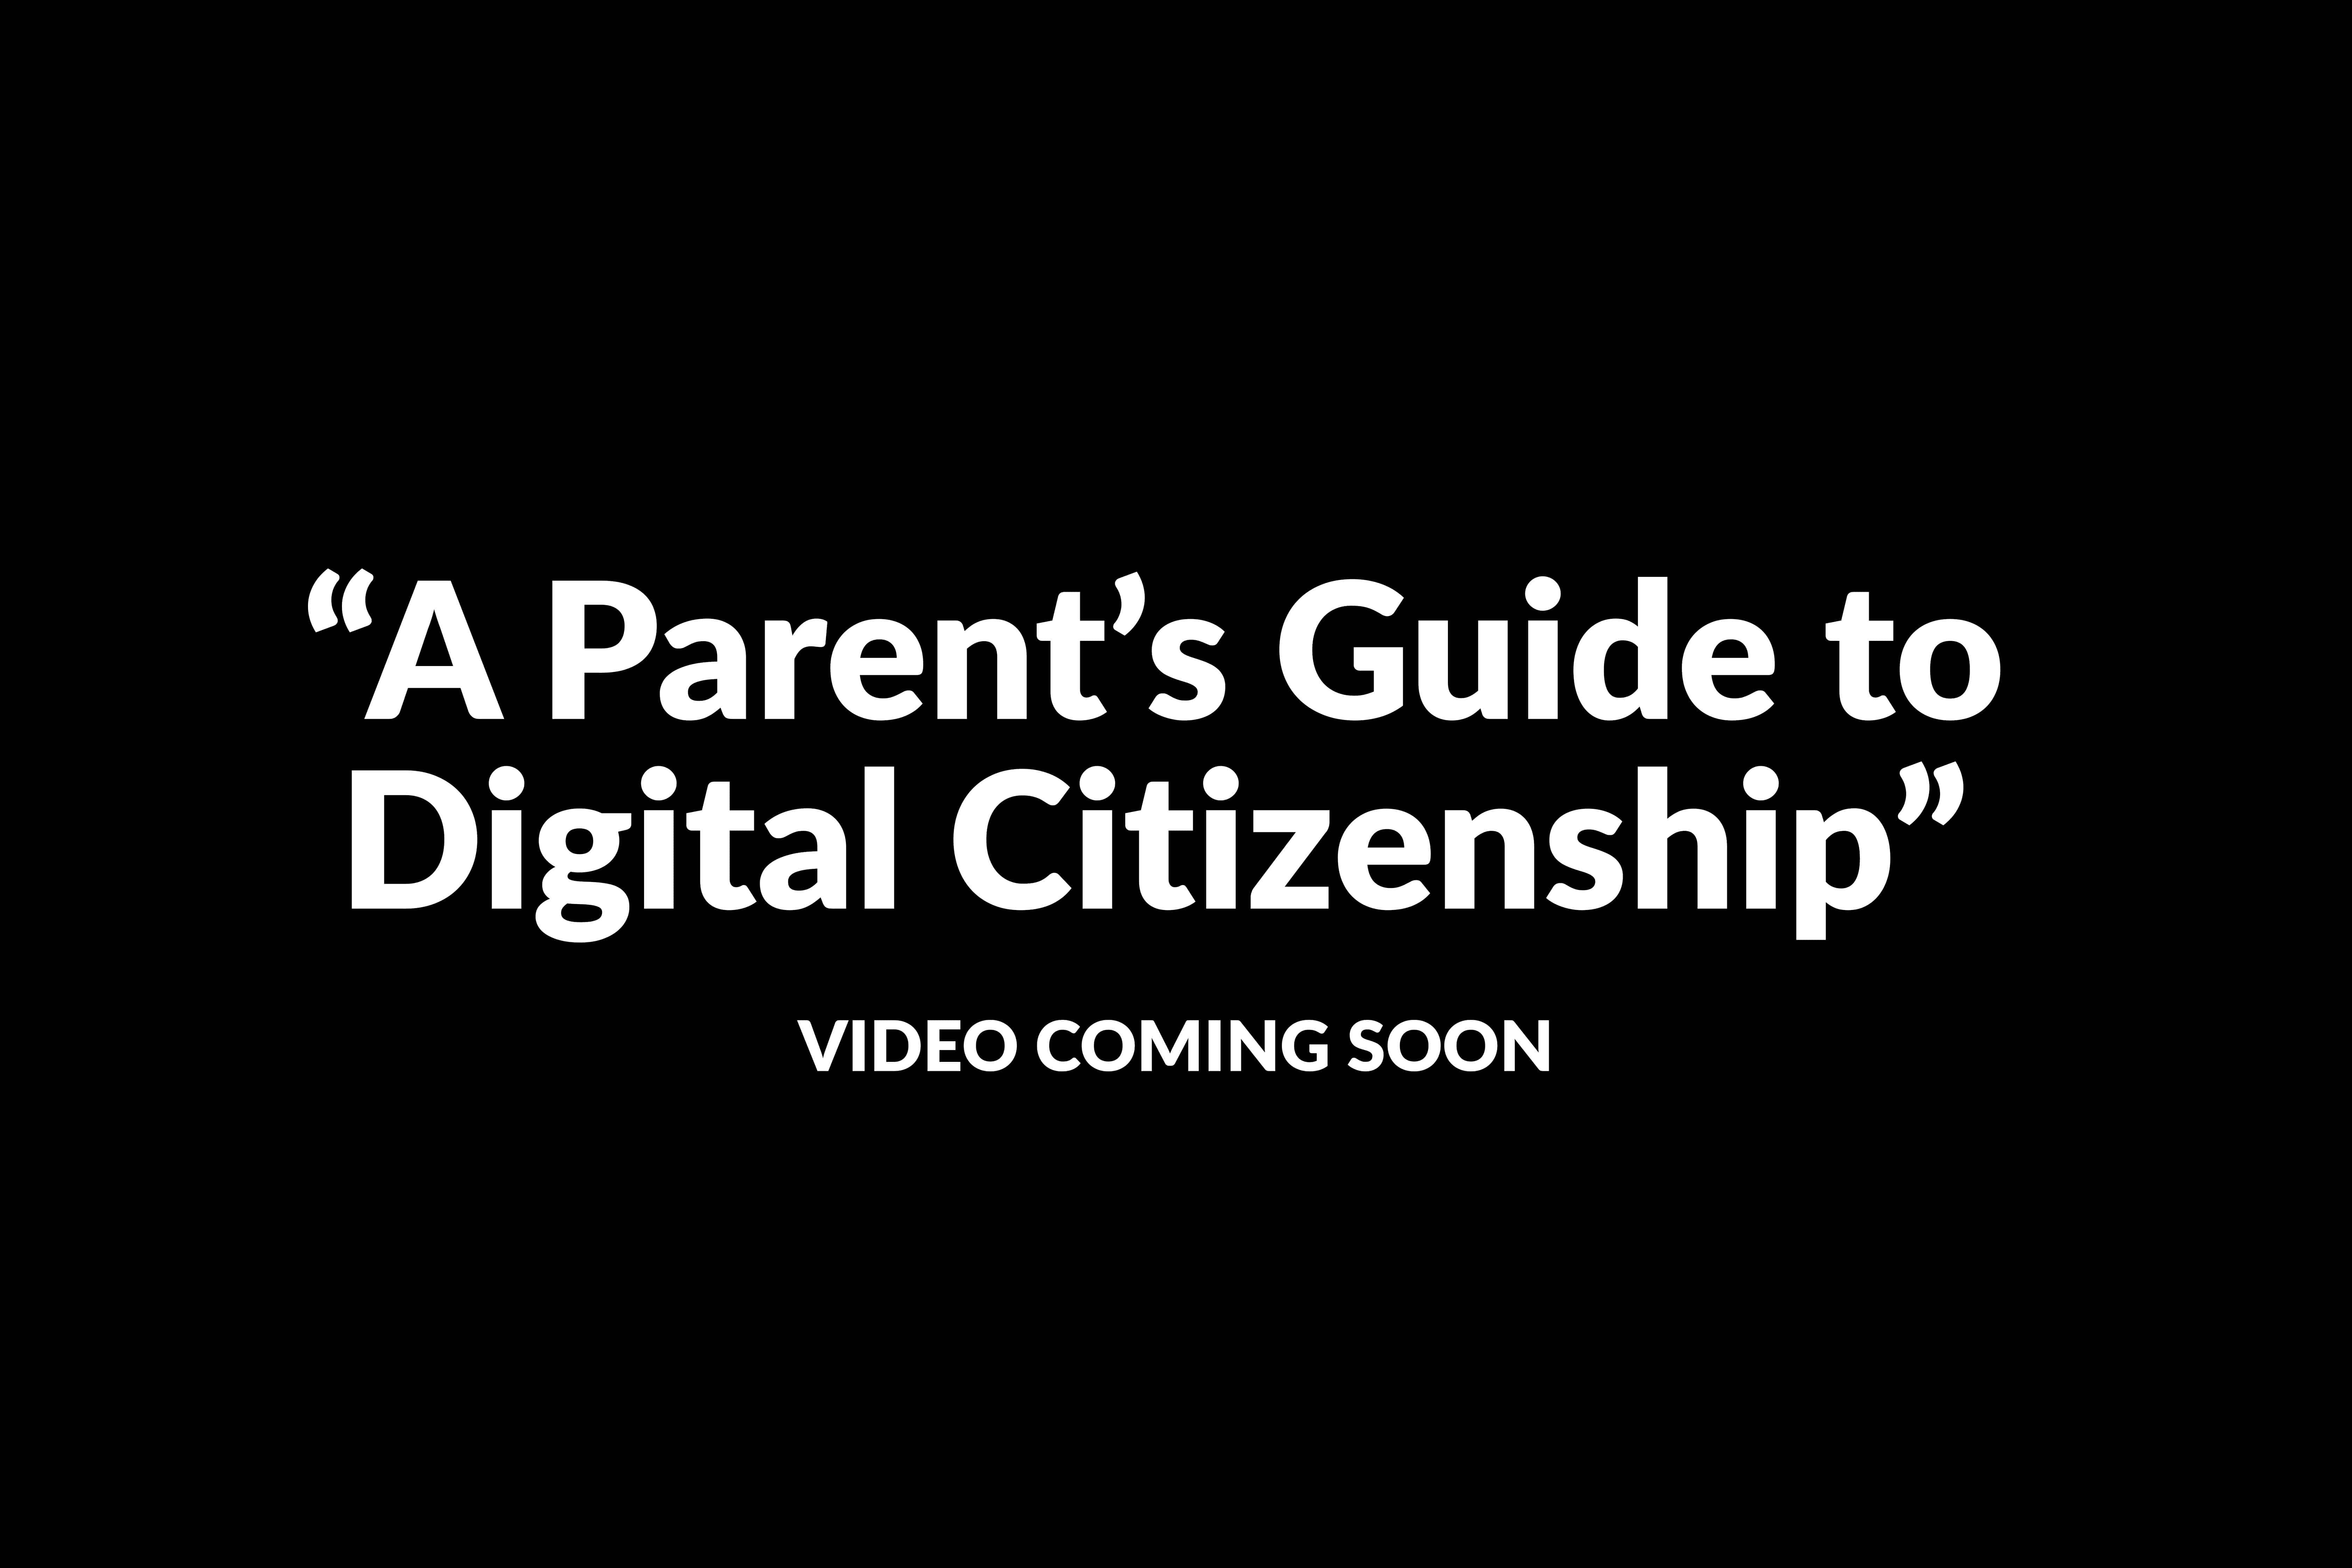 digital citizenship video teaser